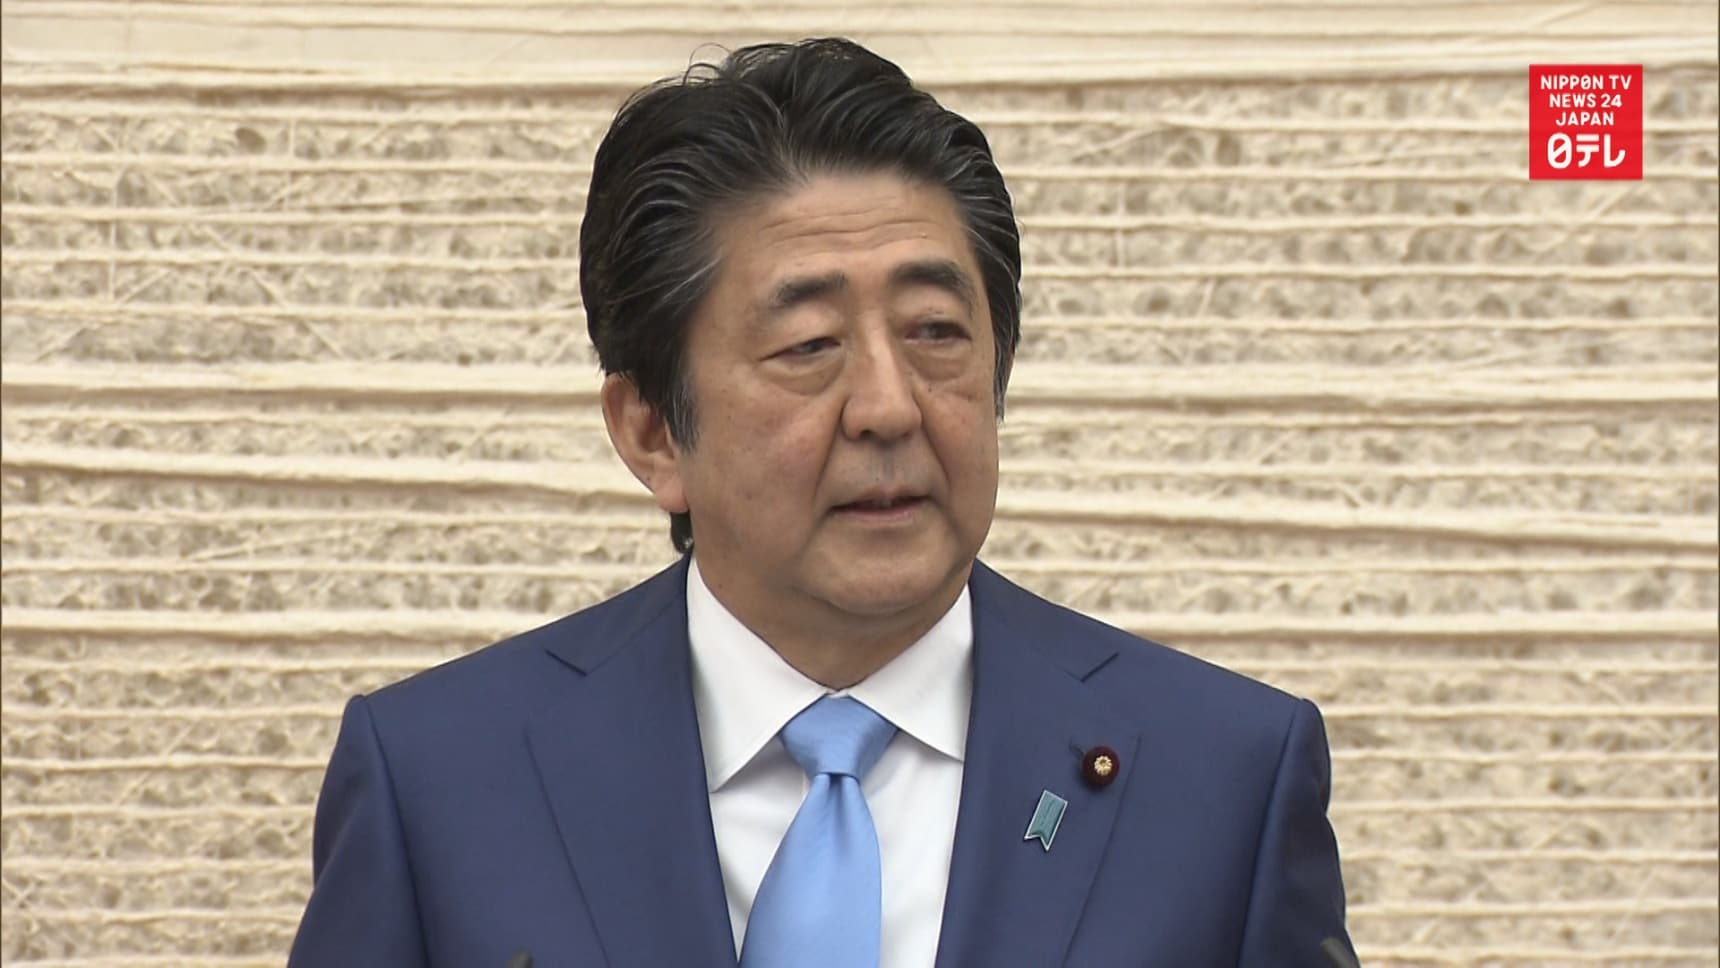 Japan Extends Stay Home Order to May 31